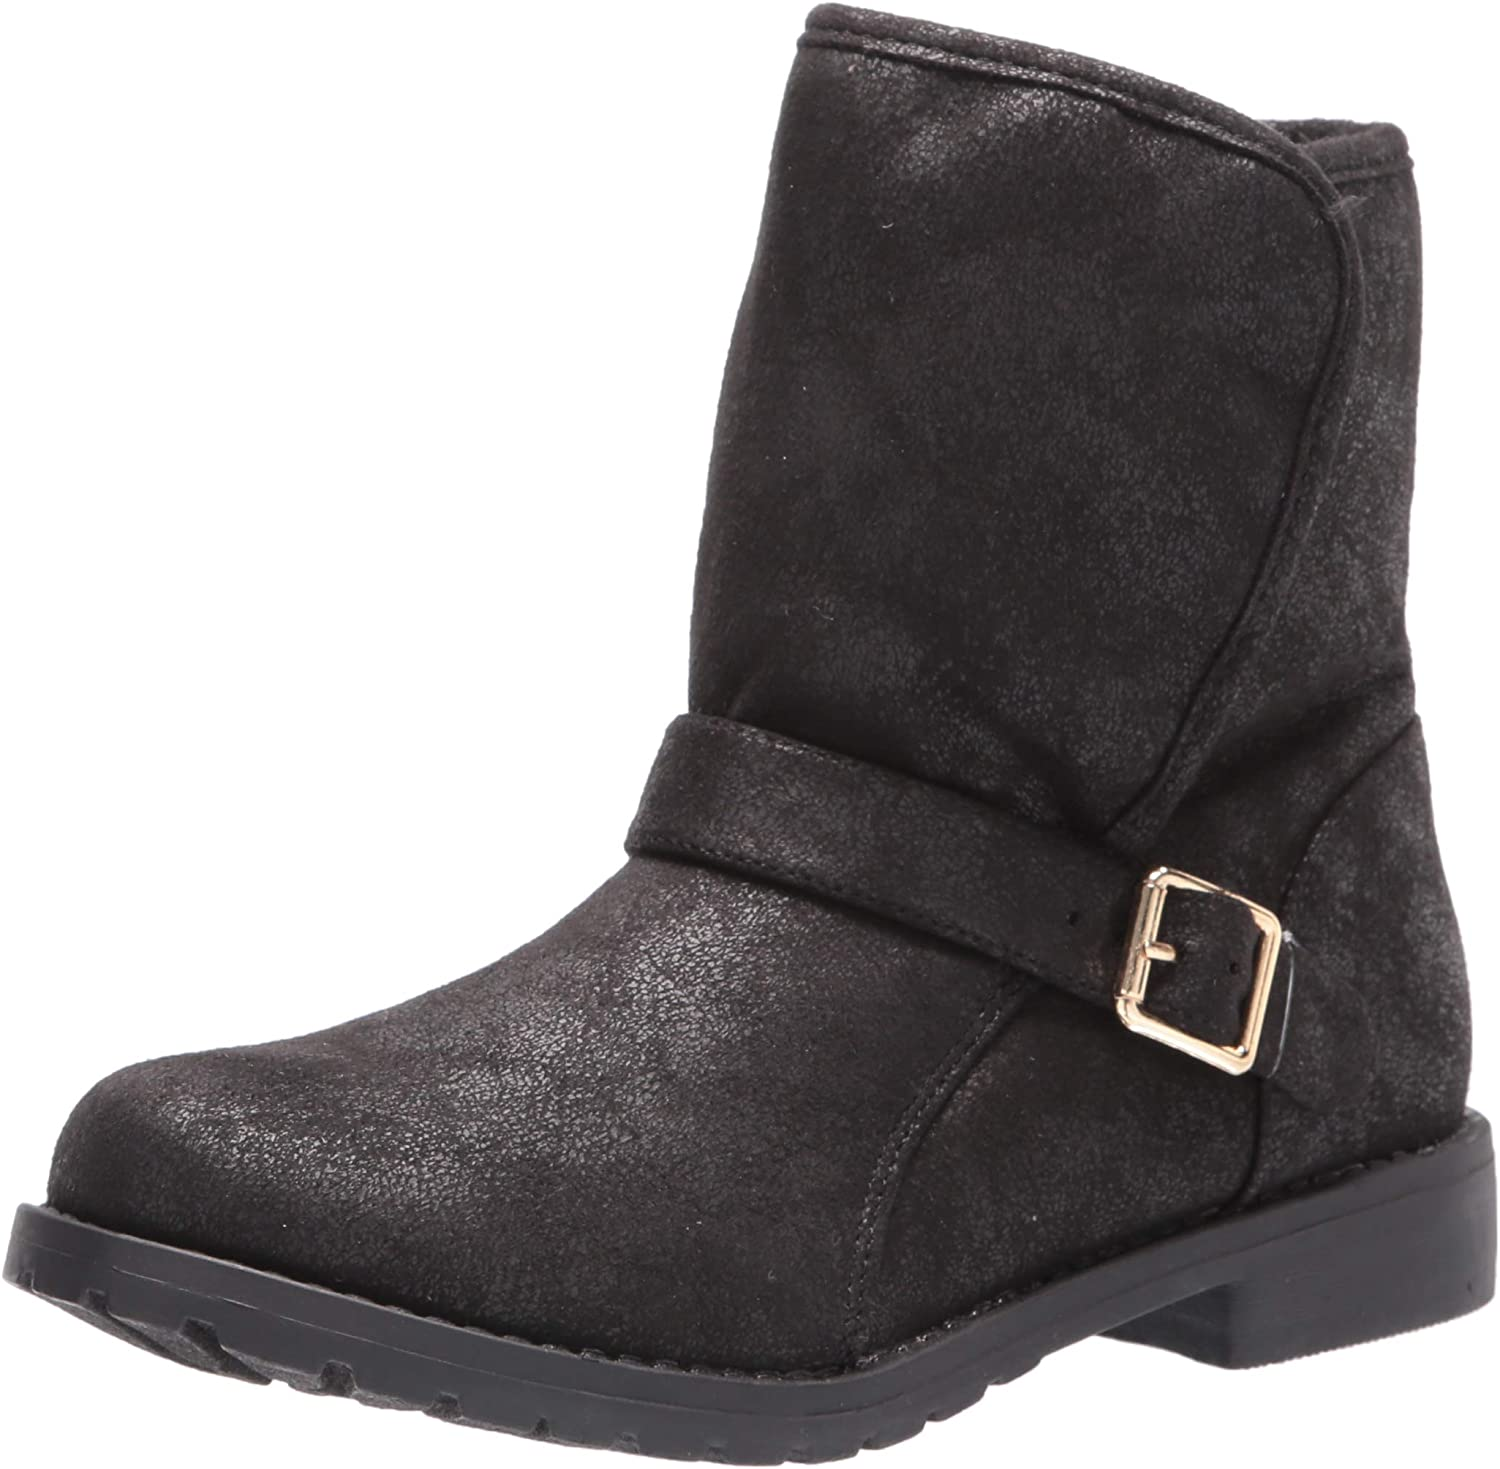 Max 45% OFF The Children's Place Unisex-Child Boots Ankle Buckle Max 63% OFF